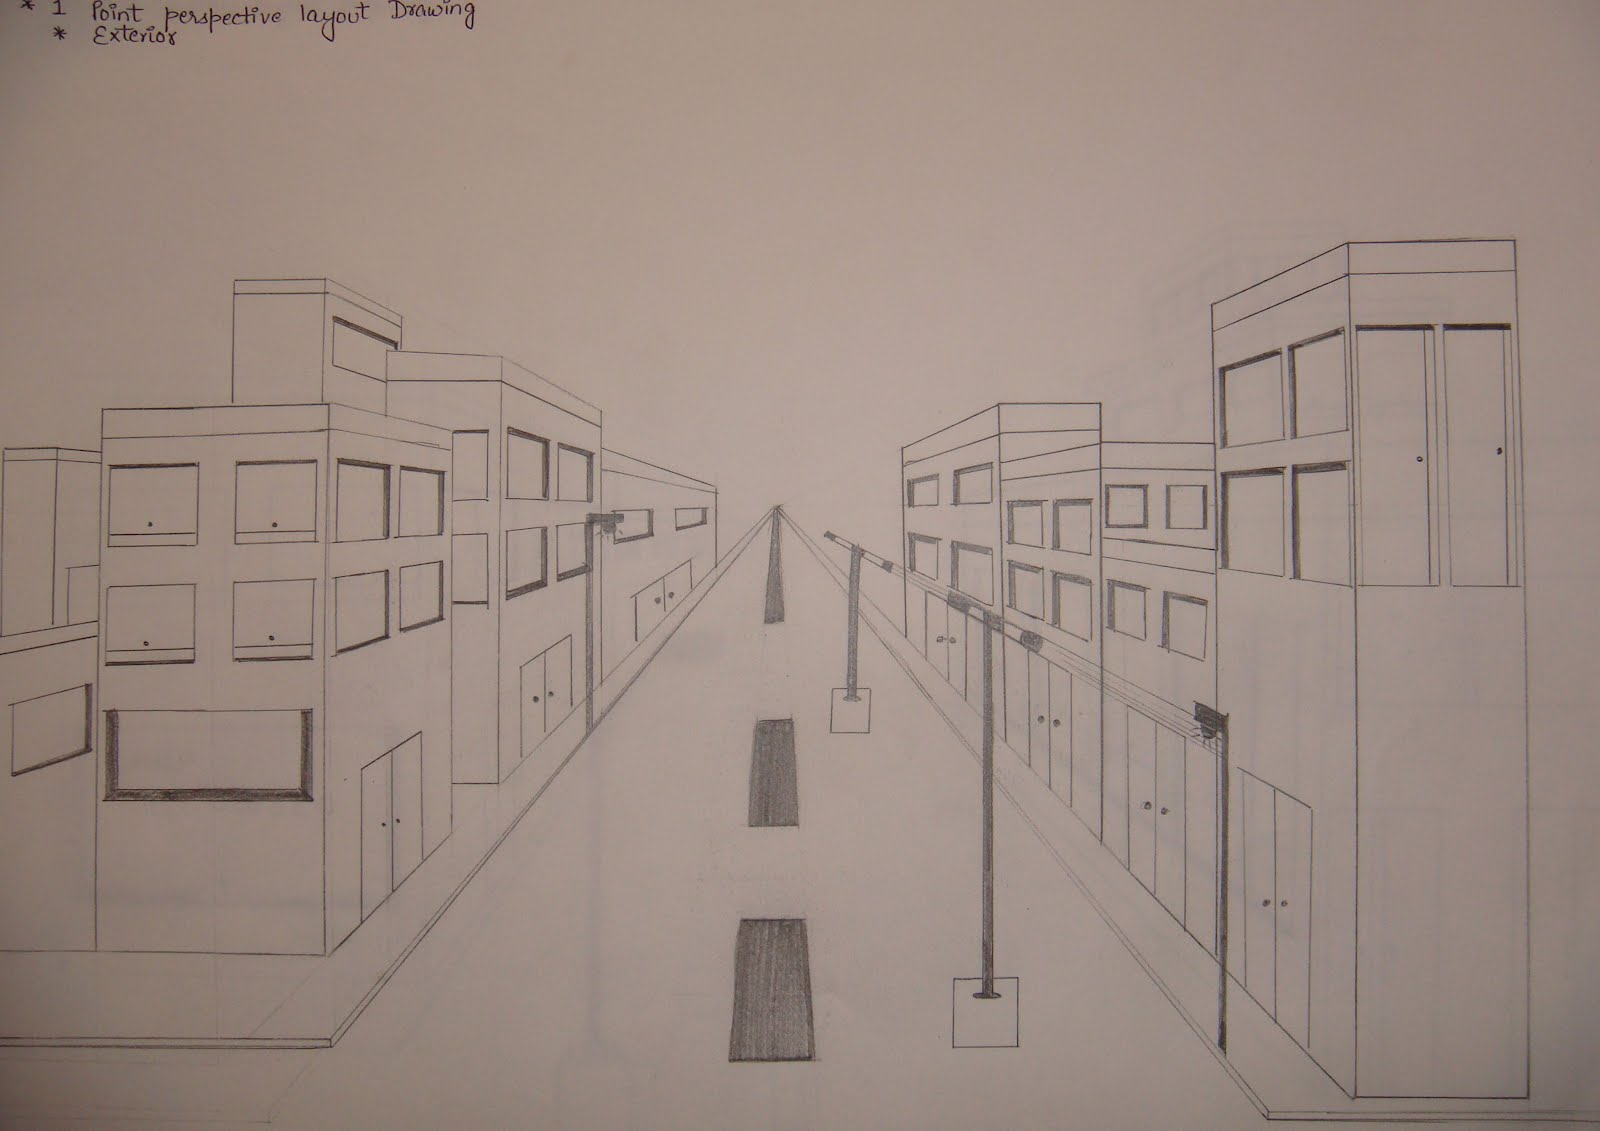 Art and animation 1 point perspective layout drawing for Exterior 1 point perspective